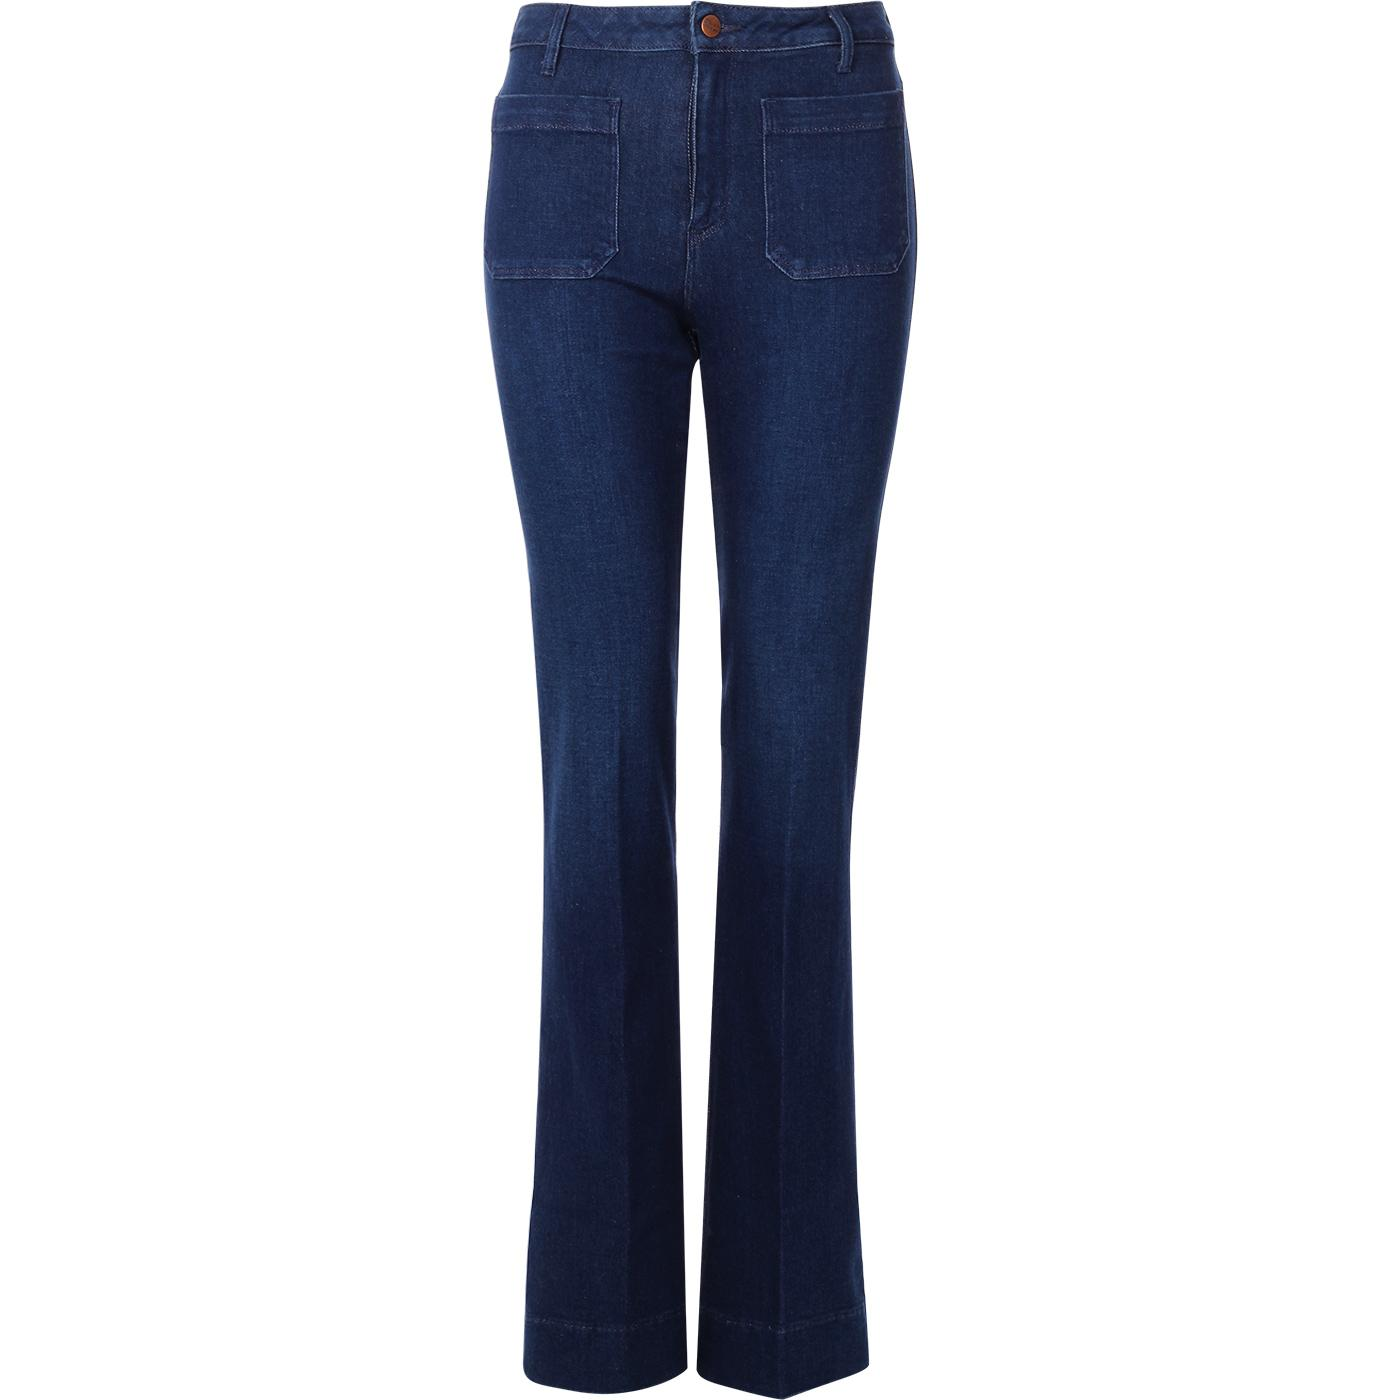 WRANGLER Flare Womens 70s Flared Jeans DEEP WATER